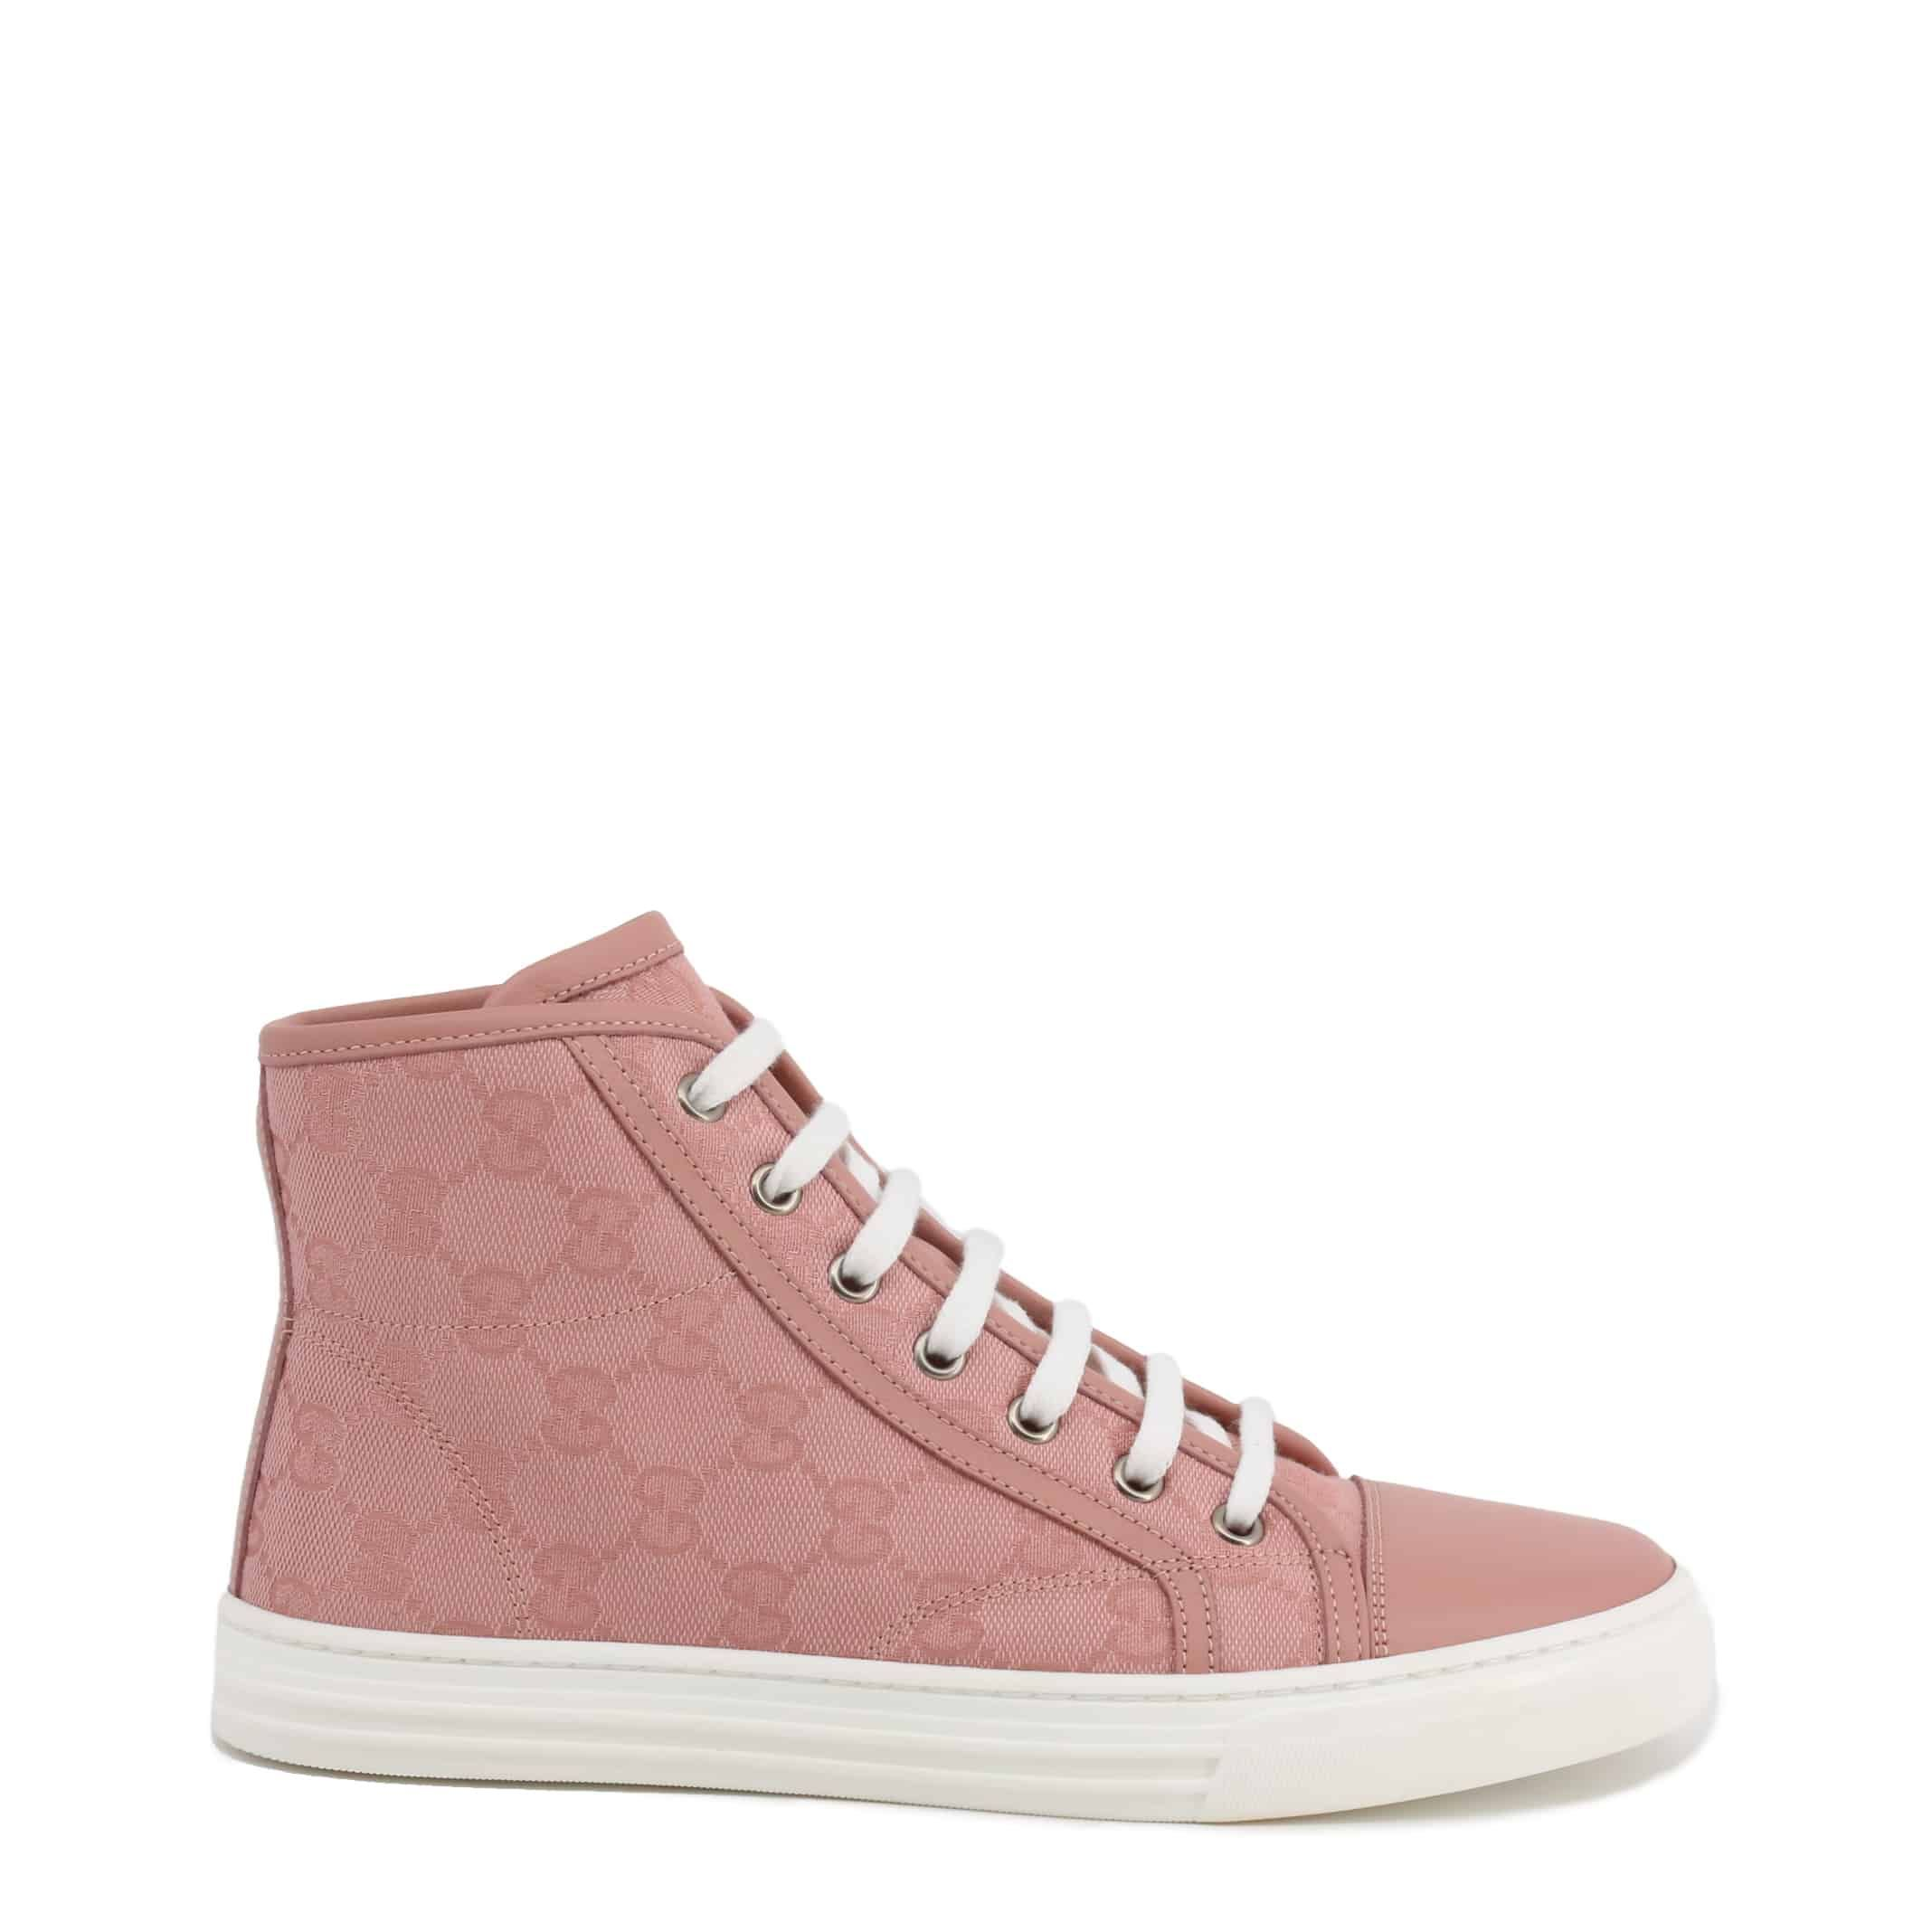 Sneakers Gucci – 426186_KQWM0